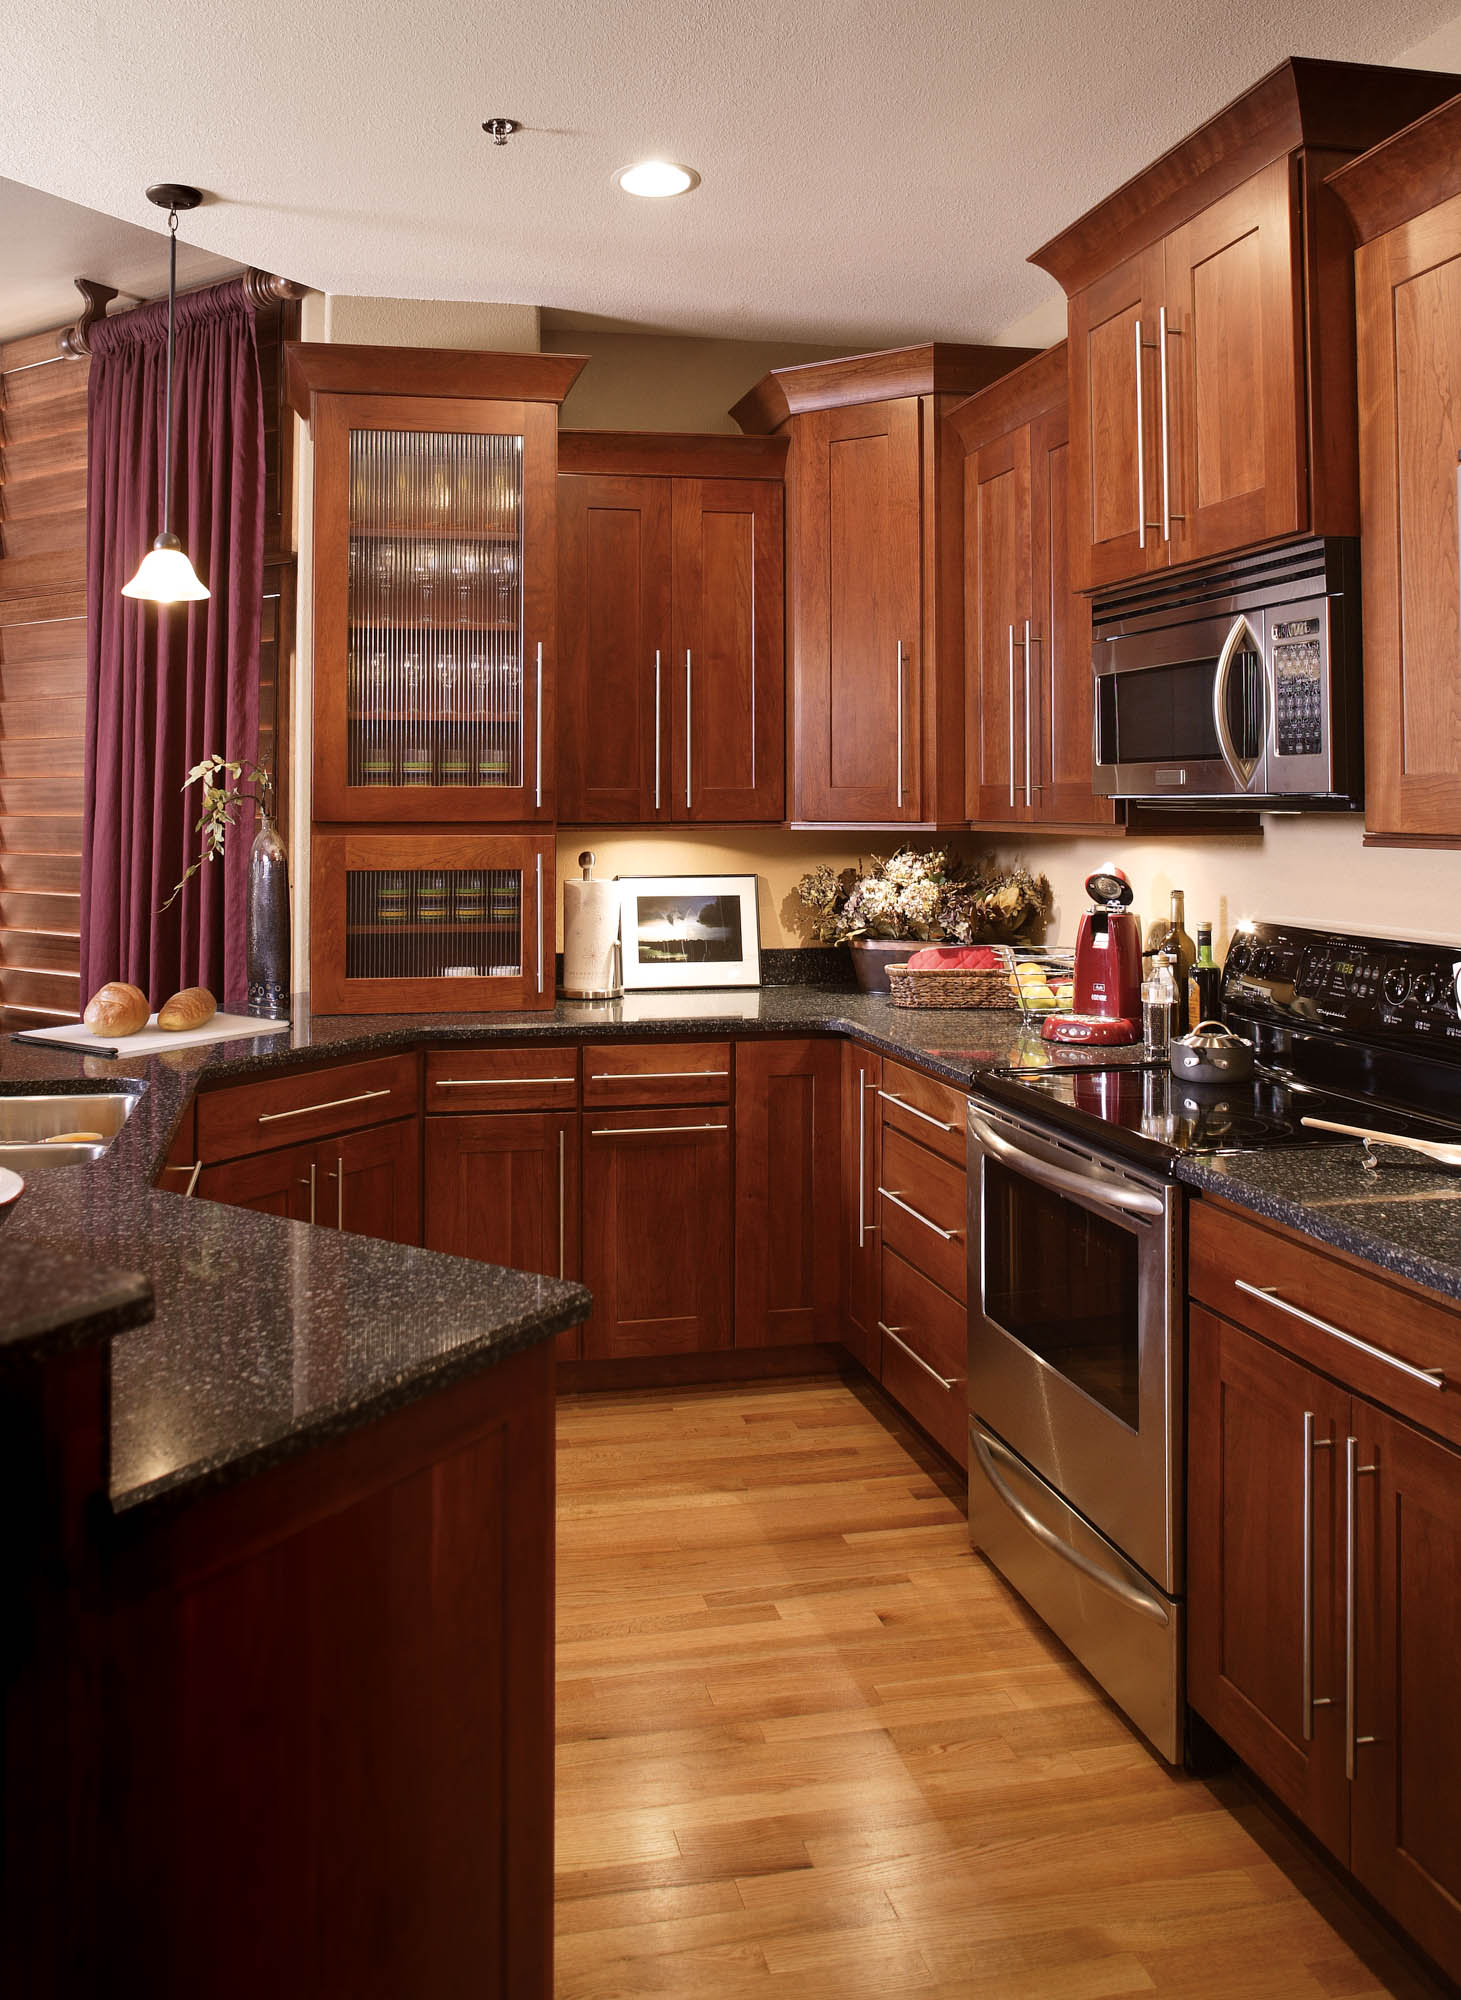 Stained kitchen cabinets in Cayenne by Showplace Cabinetry - view 2